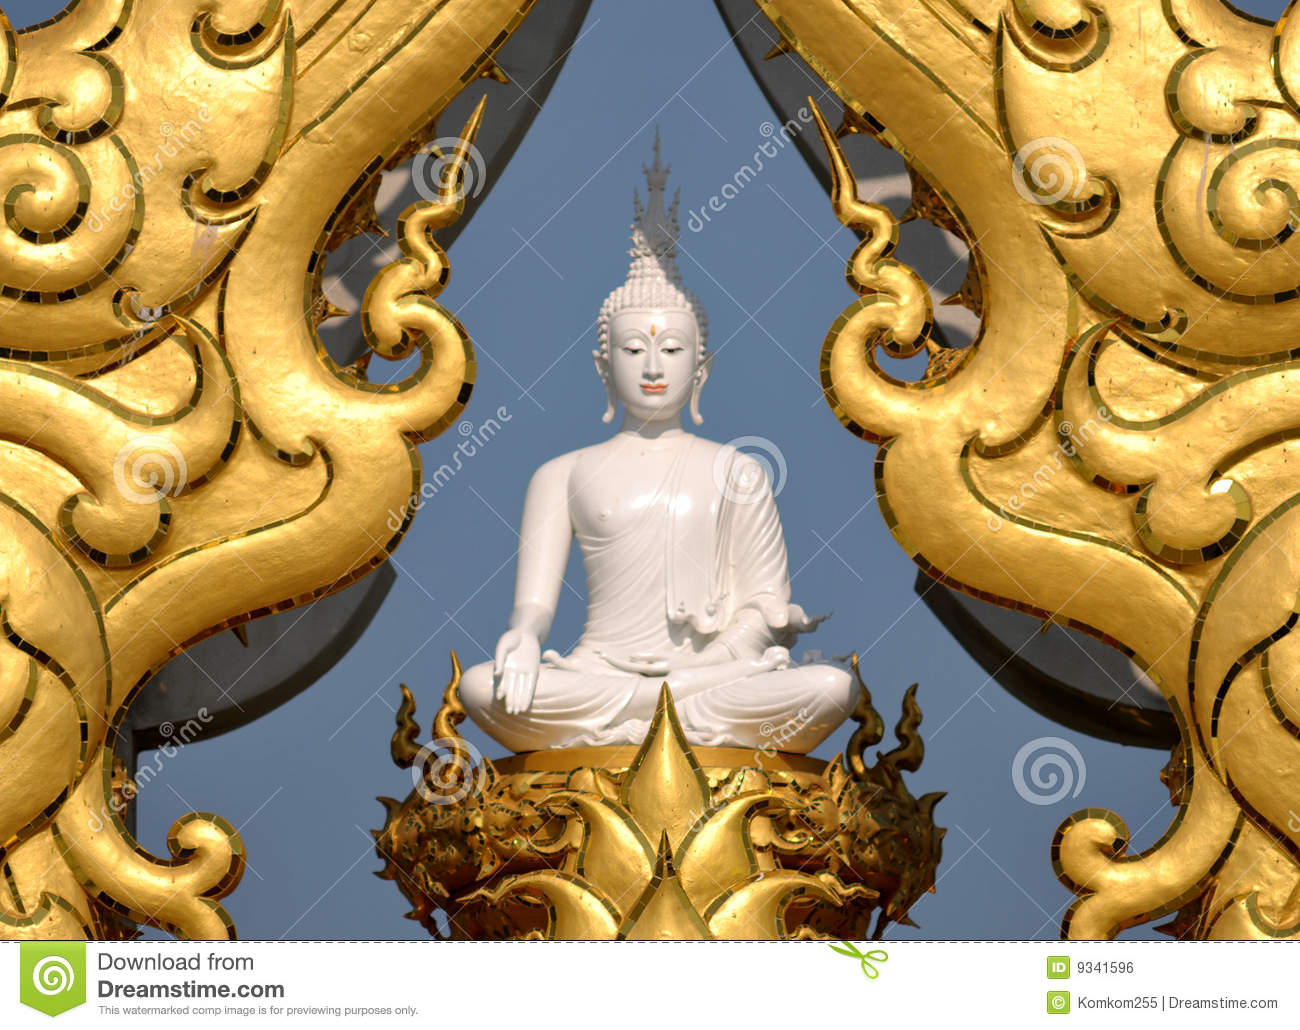 and buddhist singles in maryland Buddhism is one of the largest religions in the united states behind christianity , judaism and islam  american buddhists include many asian americans , as well as a large number of converts of other ethnicities, and now their children and even grandchildren.